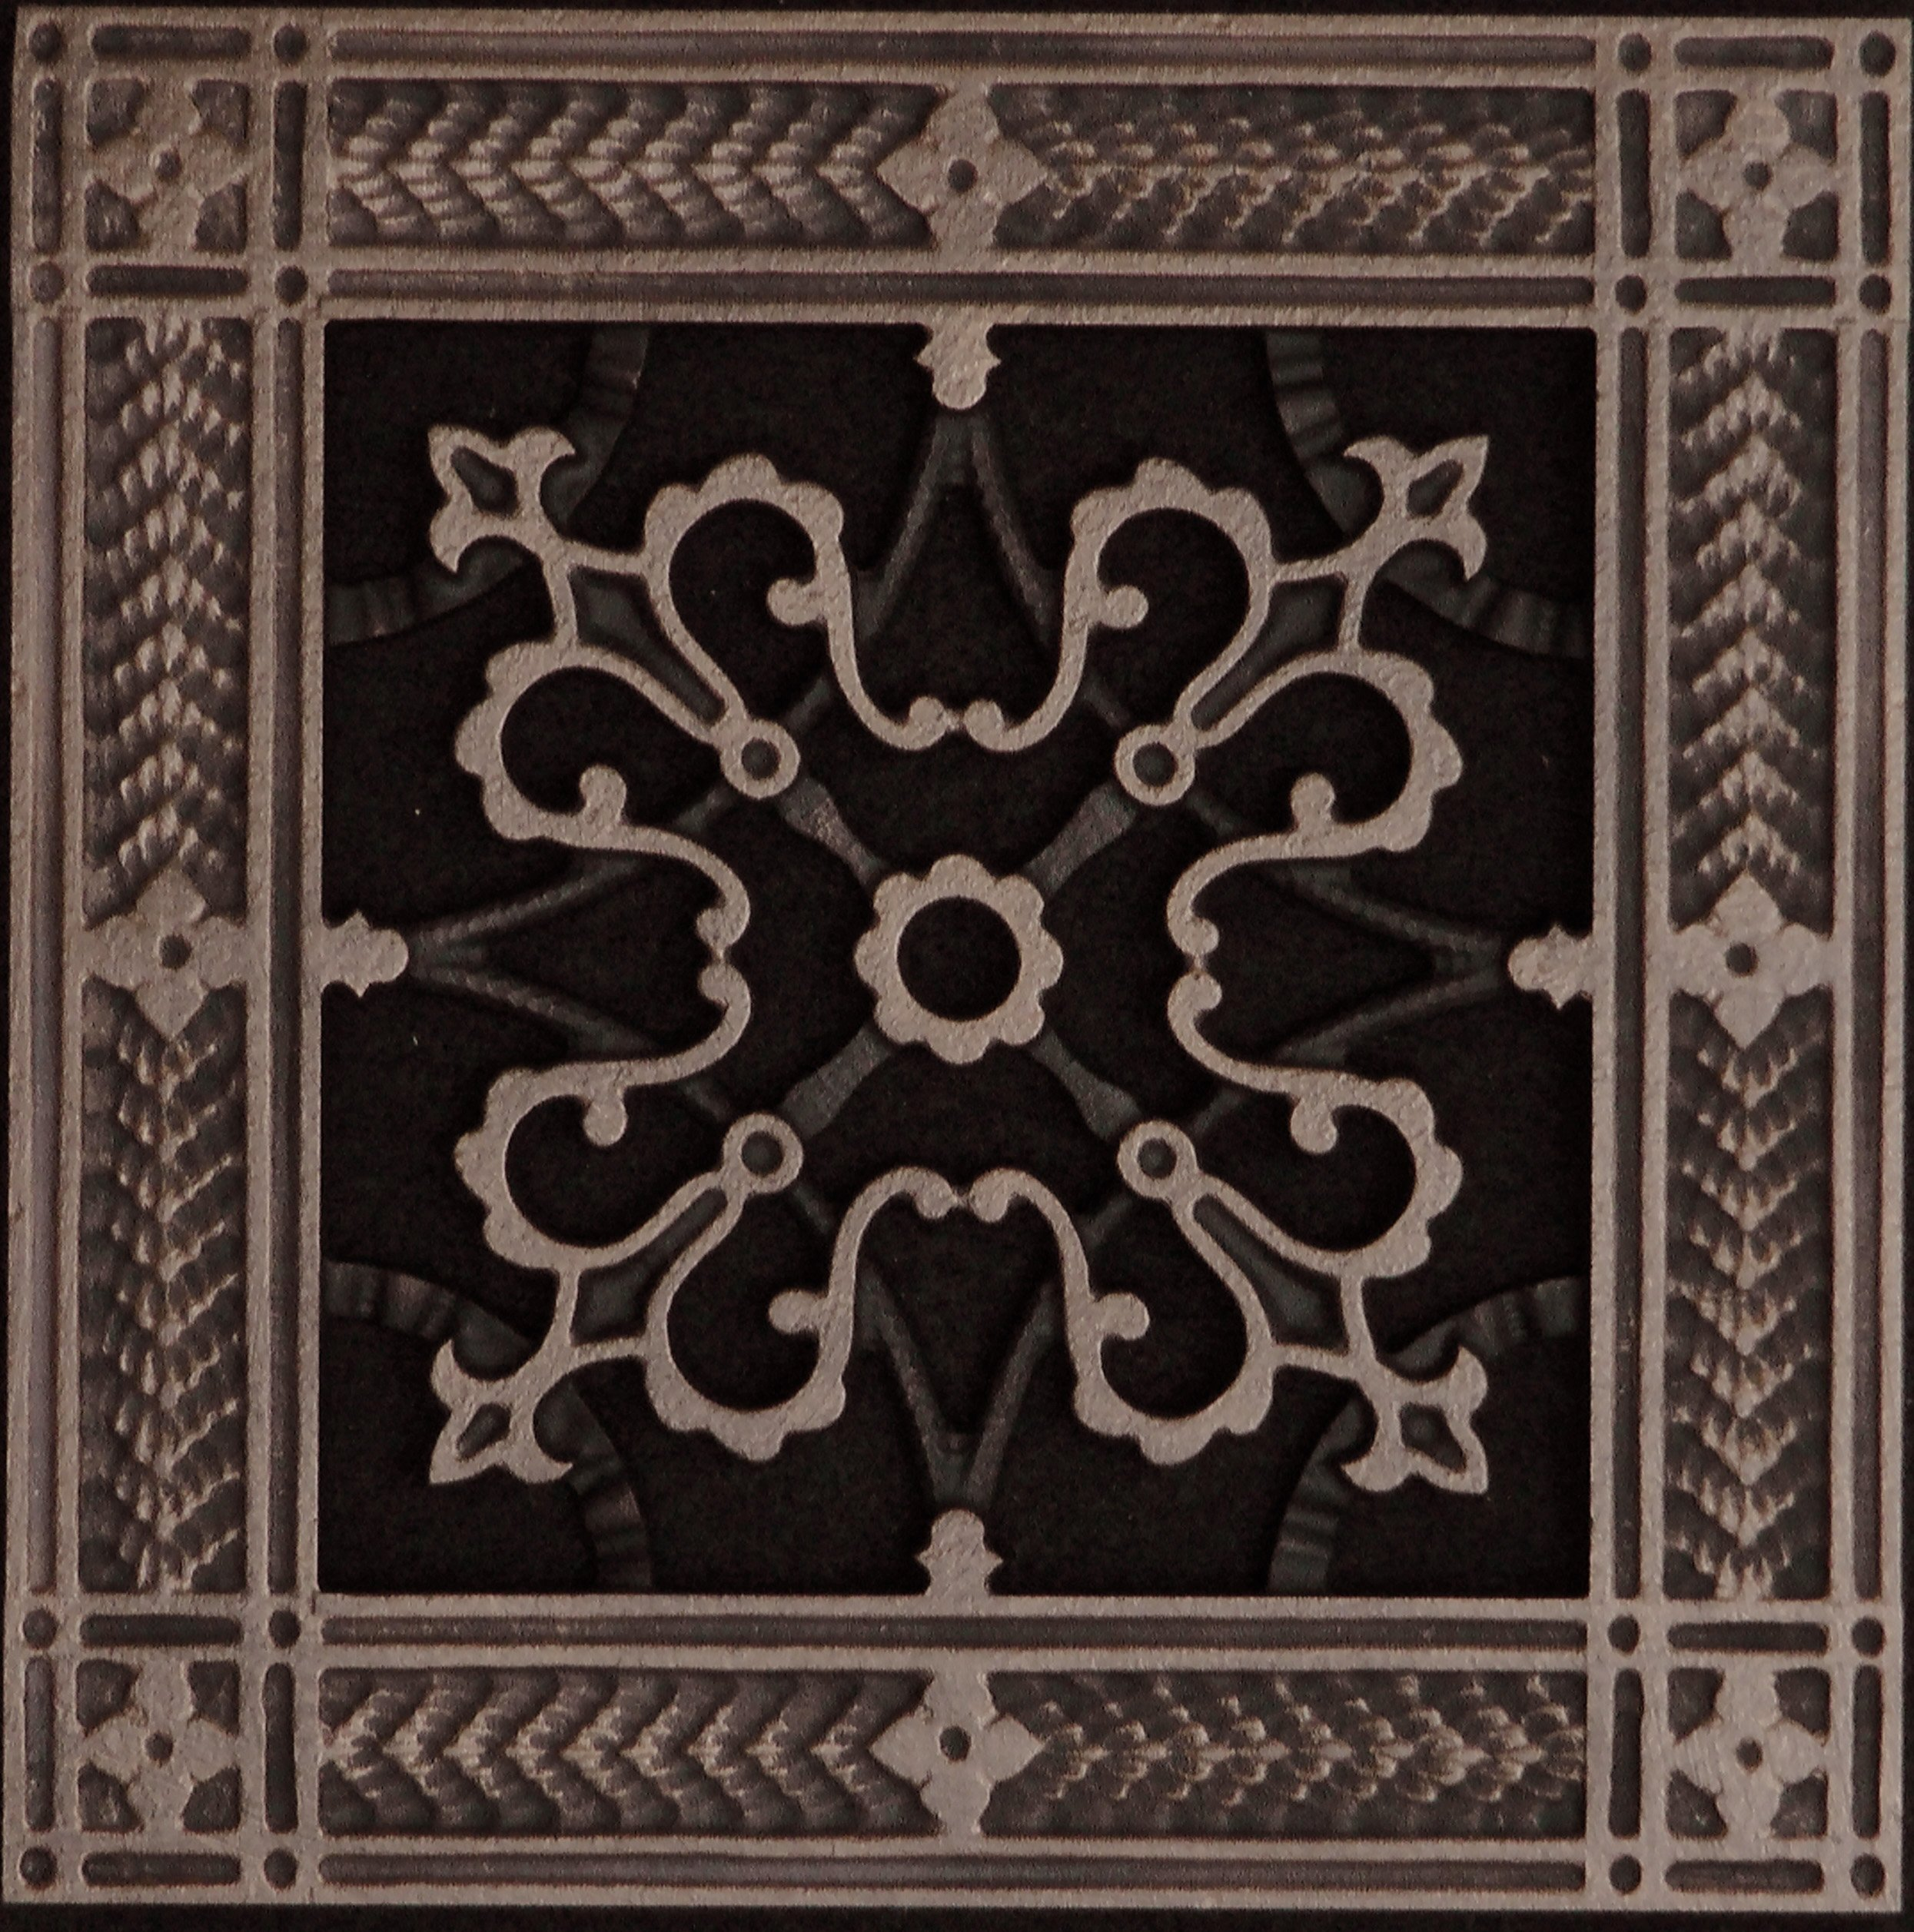 """Decorative Grille, Vent Cover, or Return Register. Made of Urethane Resin to fit over a 6''x6'' duct or opening. Total size of vent is 8""""x8''x3/8'', for wall and ceiling grilles (not for floor use)."""